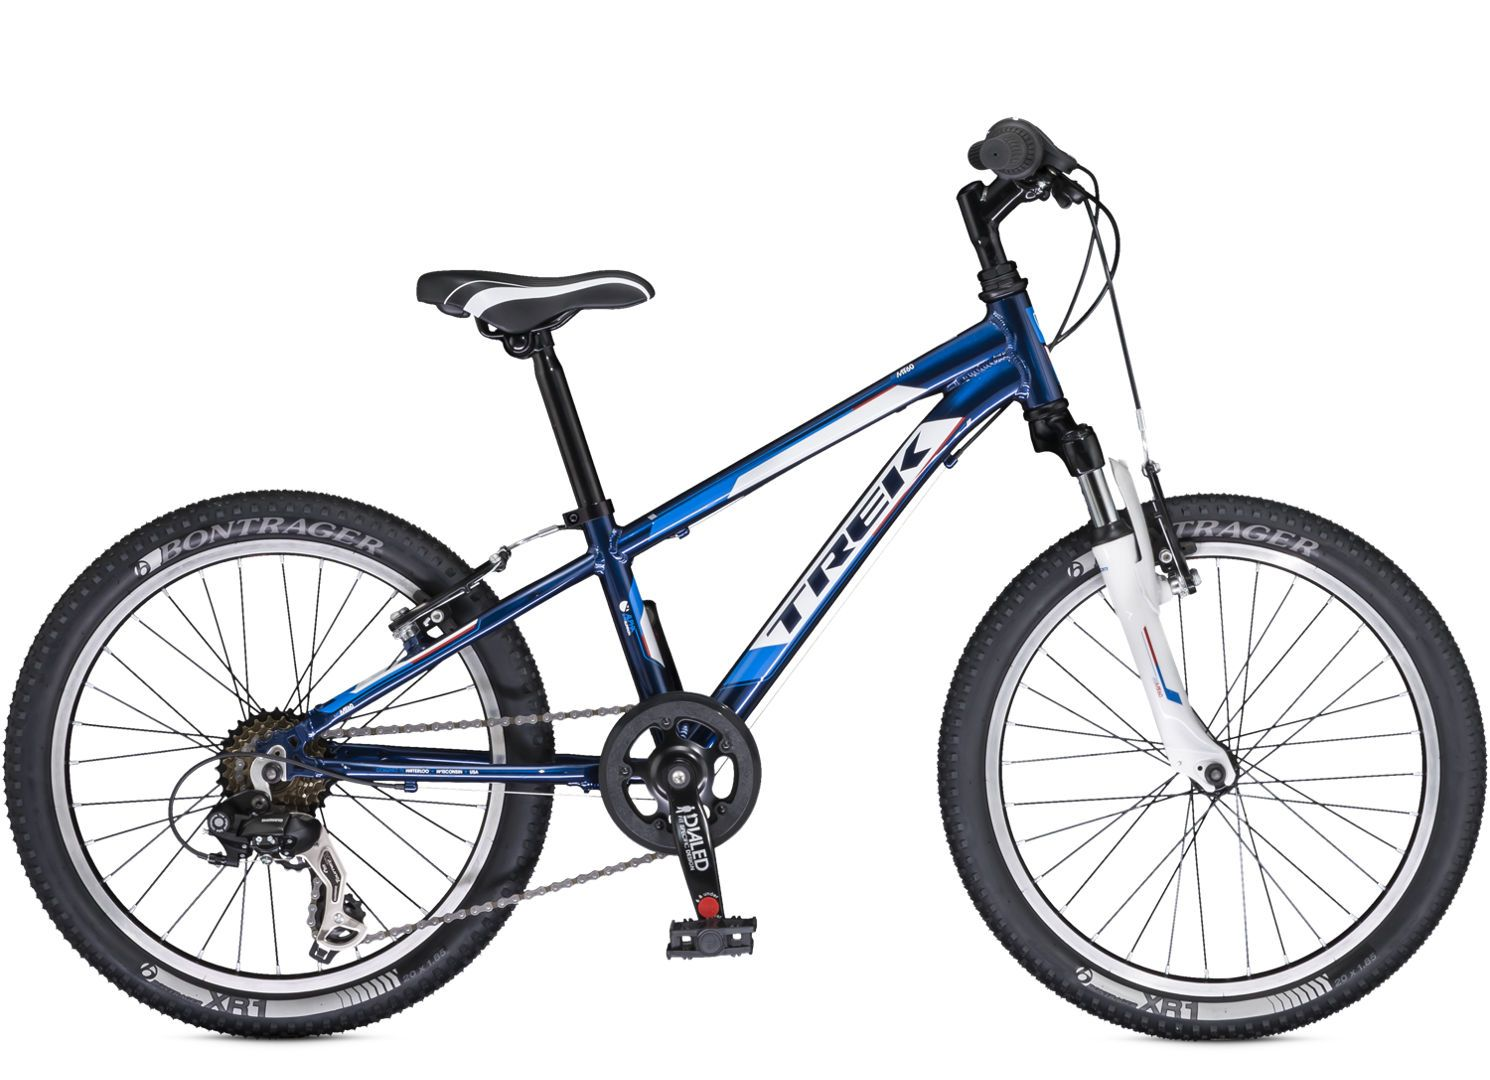 Sport Kids Mt 60 Boys Trek Kids Mountain Bikes Are The Real Deal With Light Frames Knobby Tires Quality Parts Trek Bicycle Kids Mountain Bikes Trek Bikes